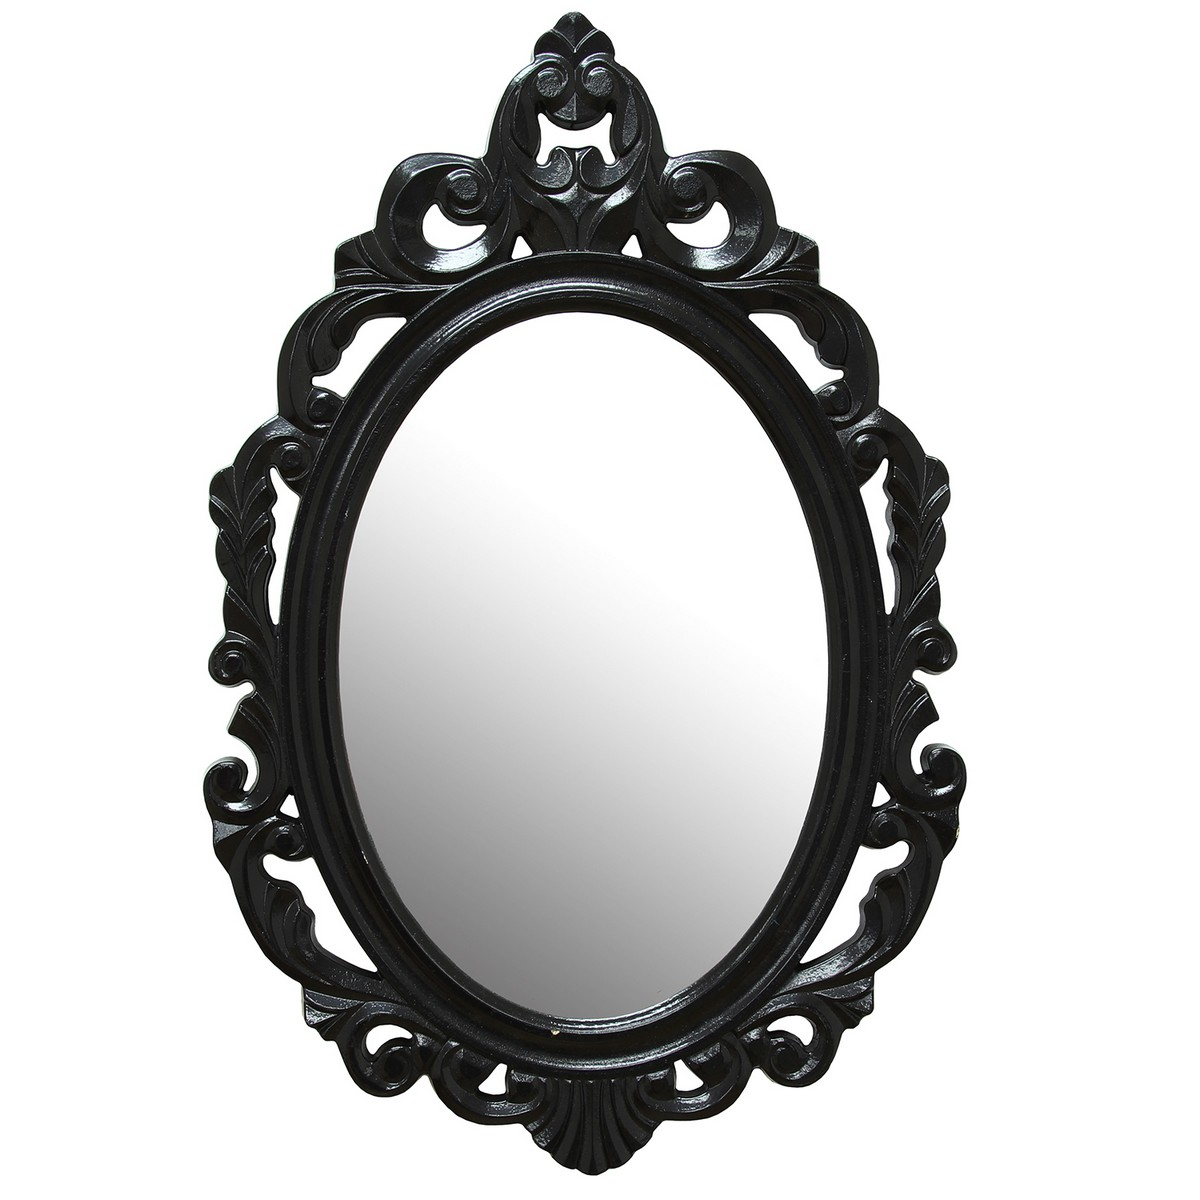 Stratton Home Decor Black Baroque Mirror - Black